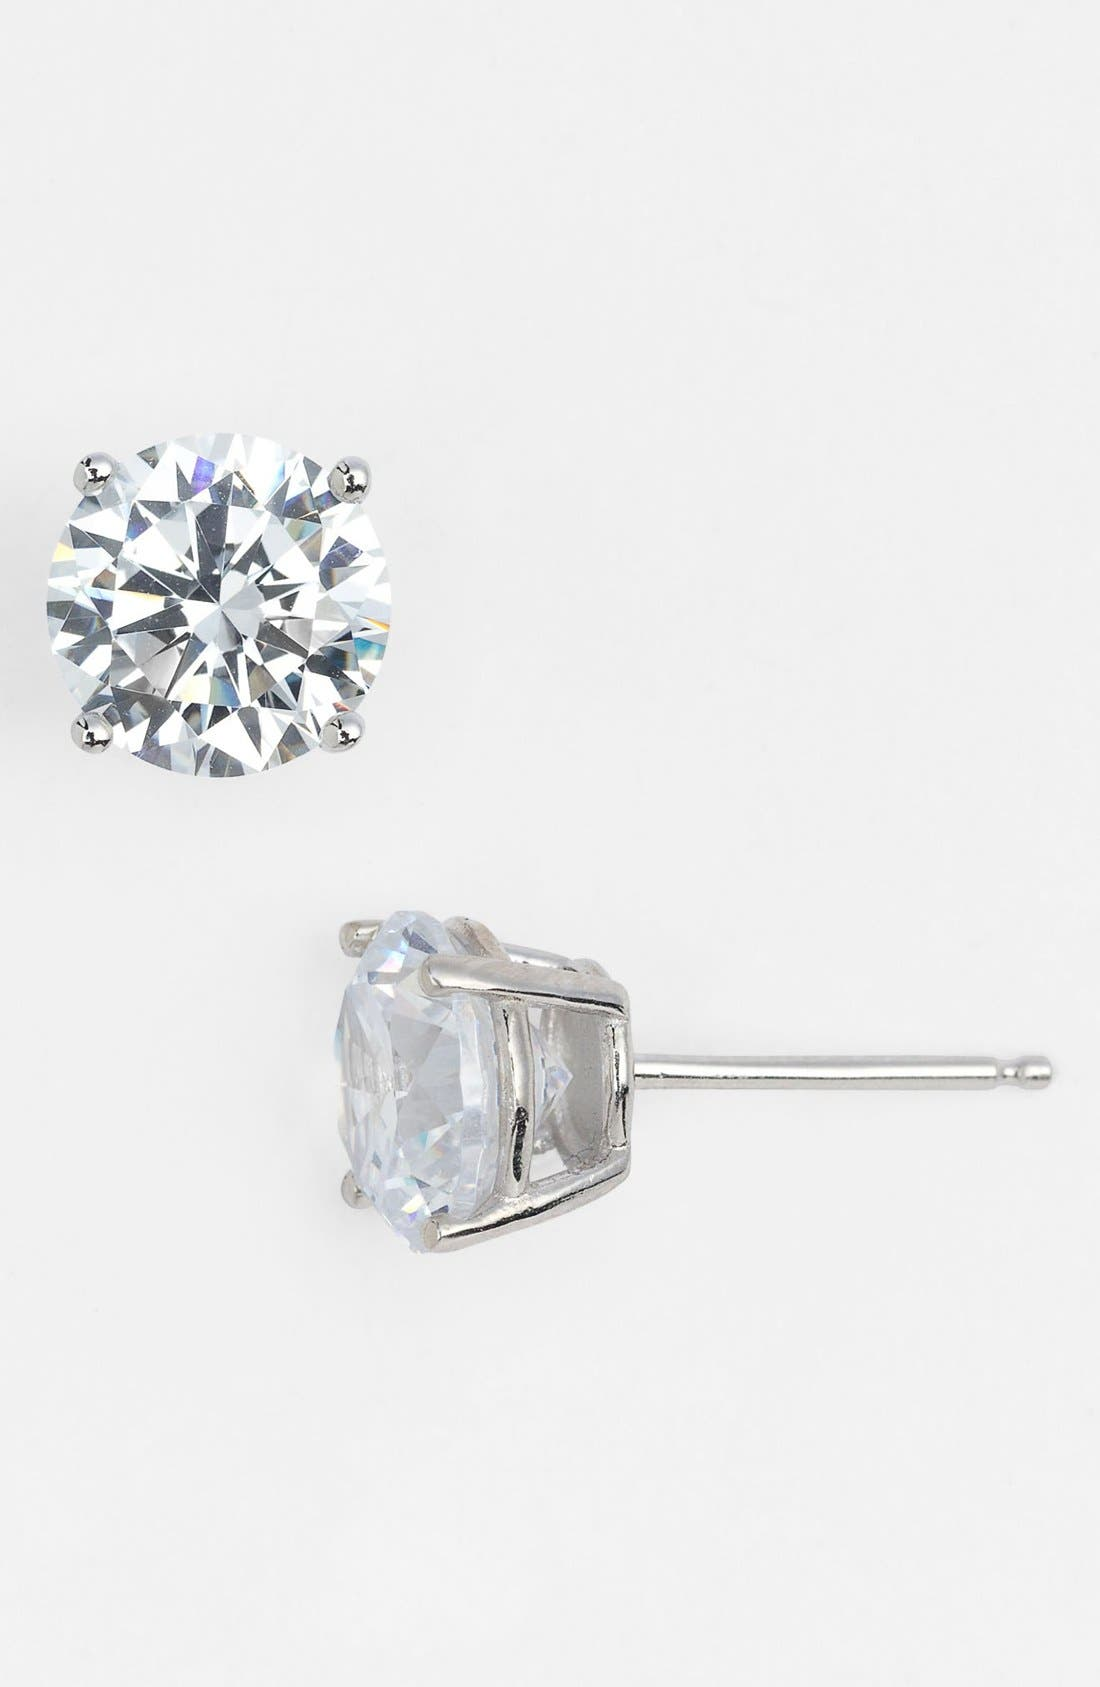 Alternate Image 1 Selected - Nordstrom 4ct tw Cubic Zirconia Stud Earrings (Special Purchase)